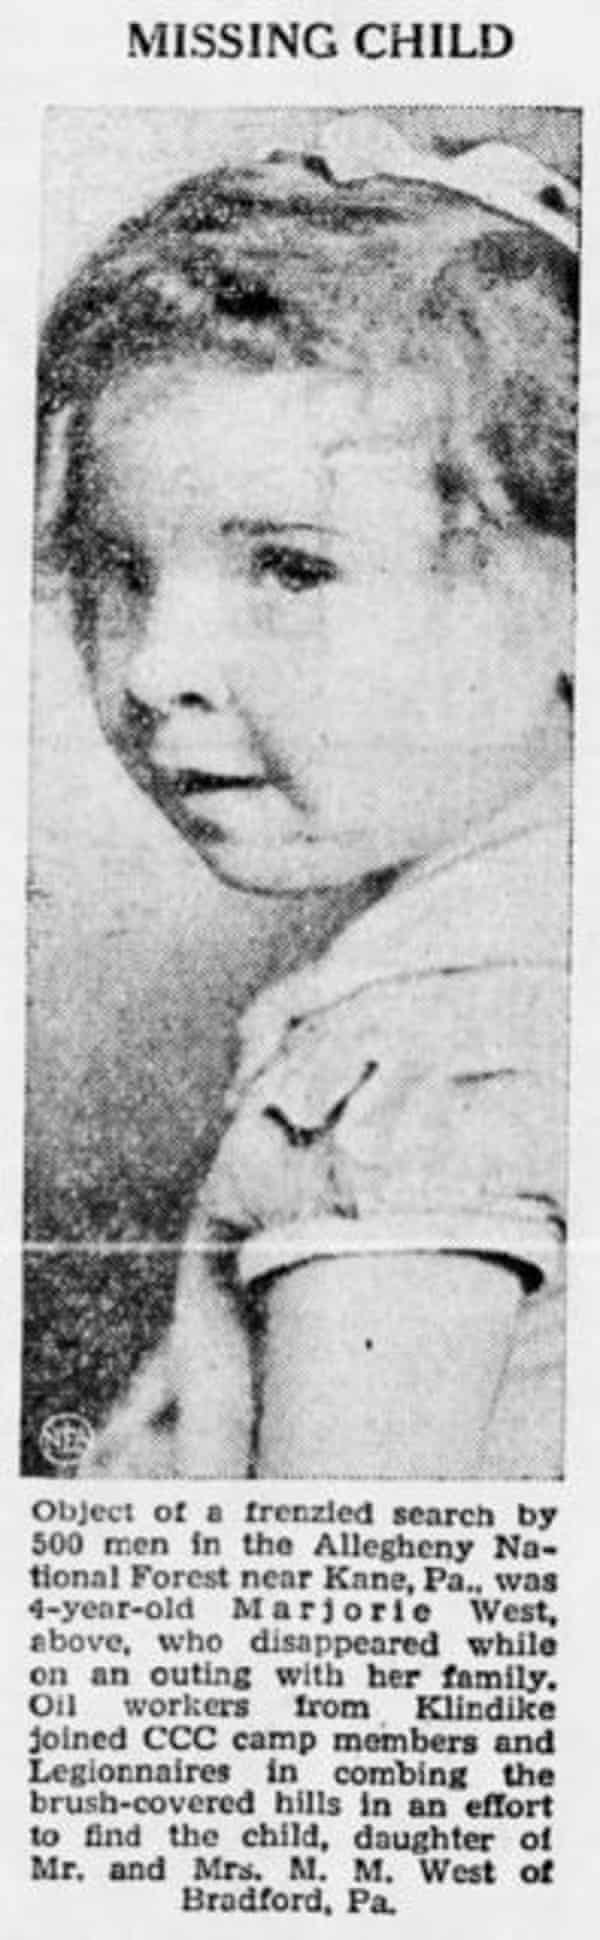 Newspaper report on Marjorie West's disappearance.